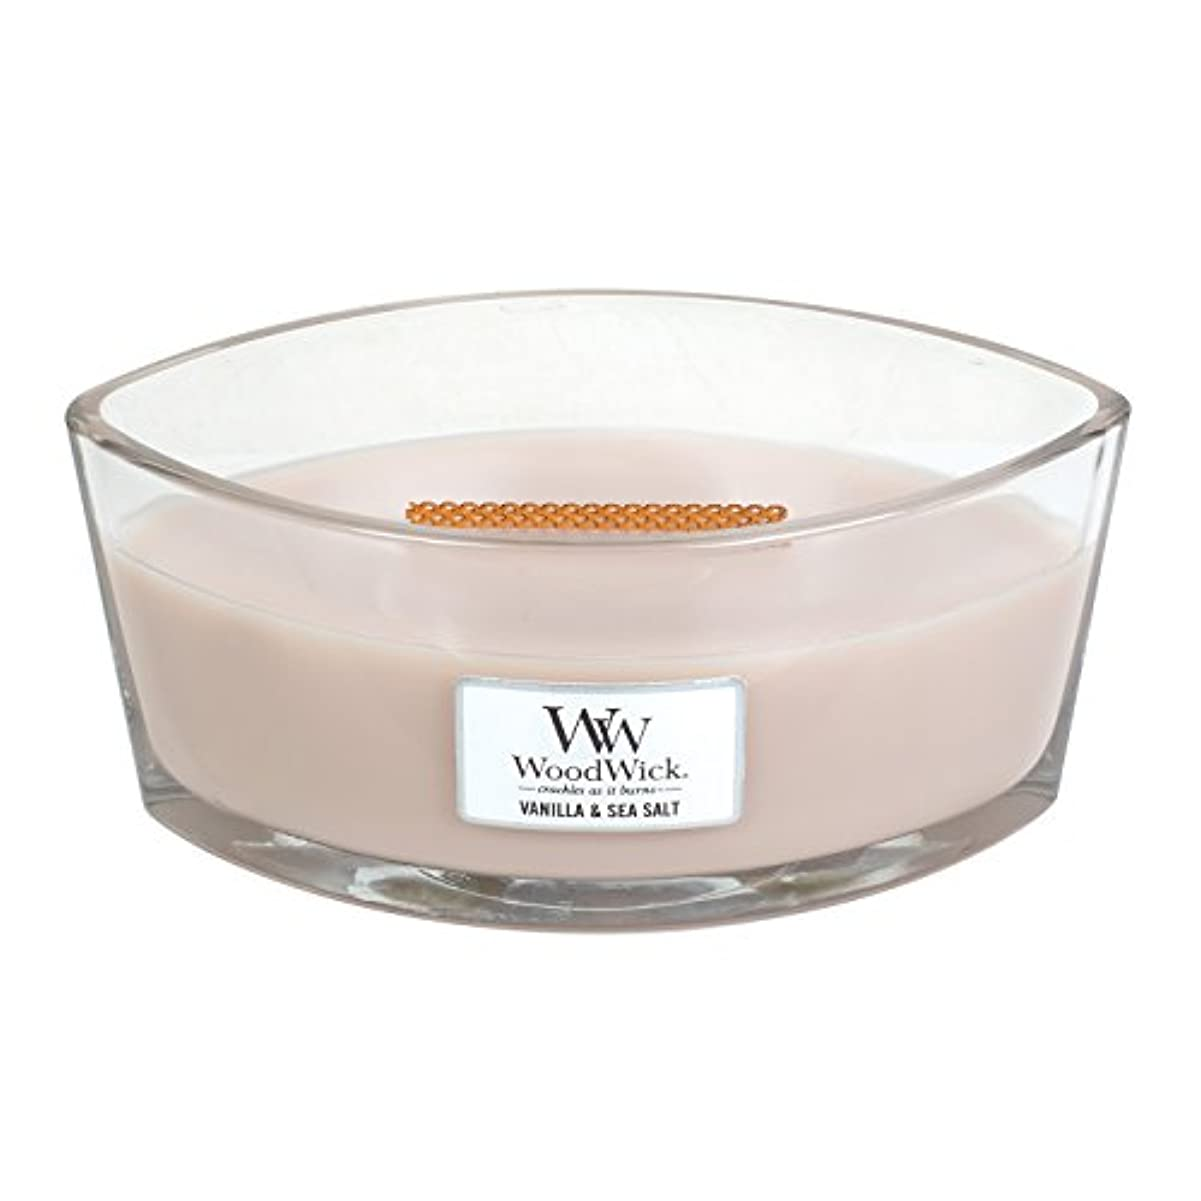 情緒的サイレン浴室WoodWick VANILLA & SEA SALT, Highly Scented Candle, Ellipse Glass Jar with Original HearthWick Flame, Large 18cm...